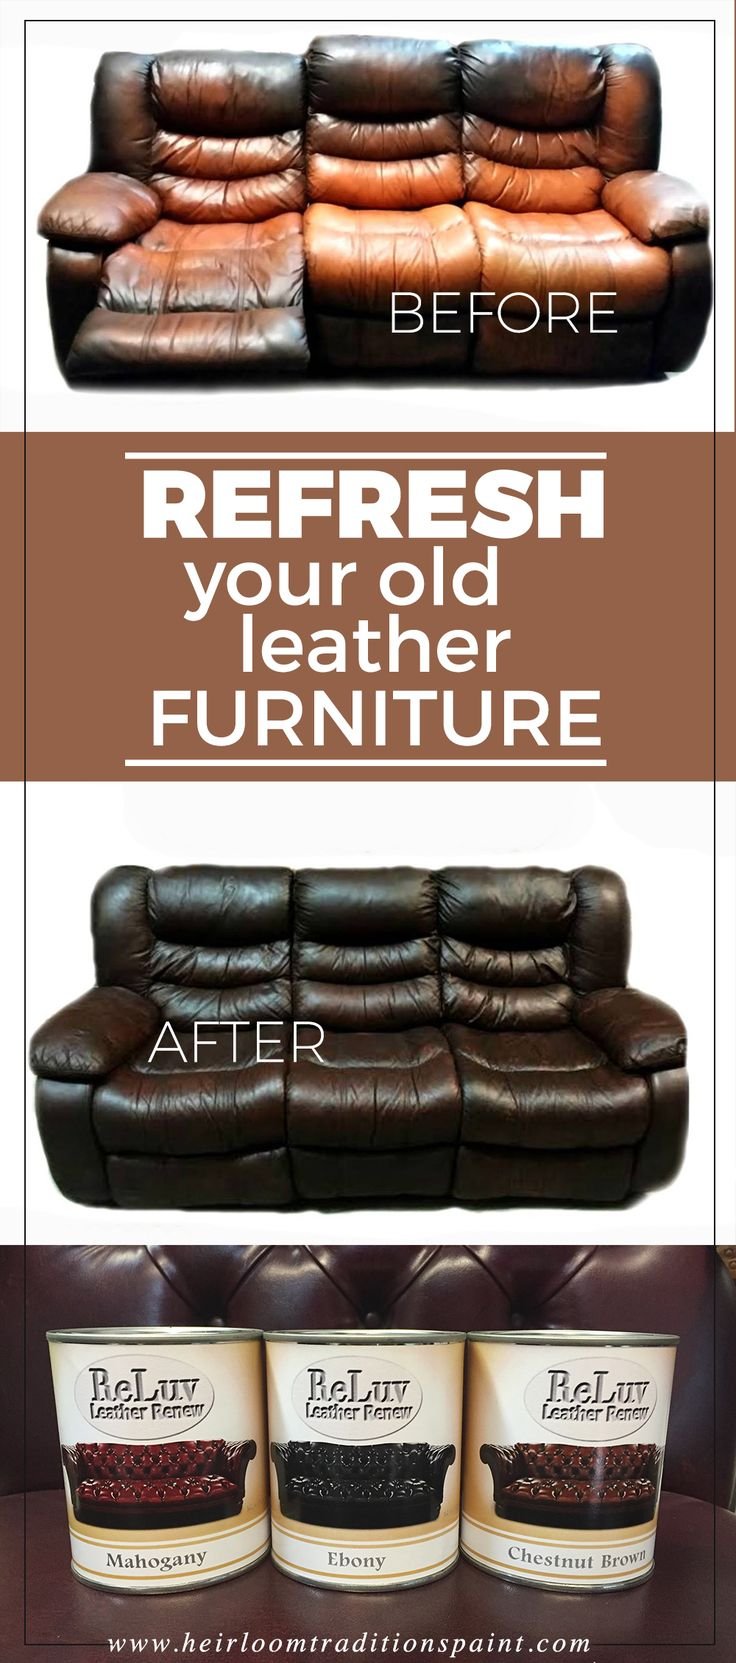 25 Best Ideas About Painting Leather On Pinterest Paint Leather Www Gucci And Leather Biker